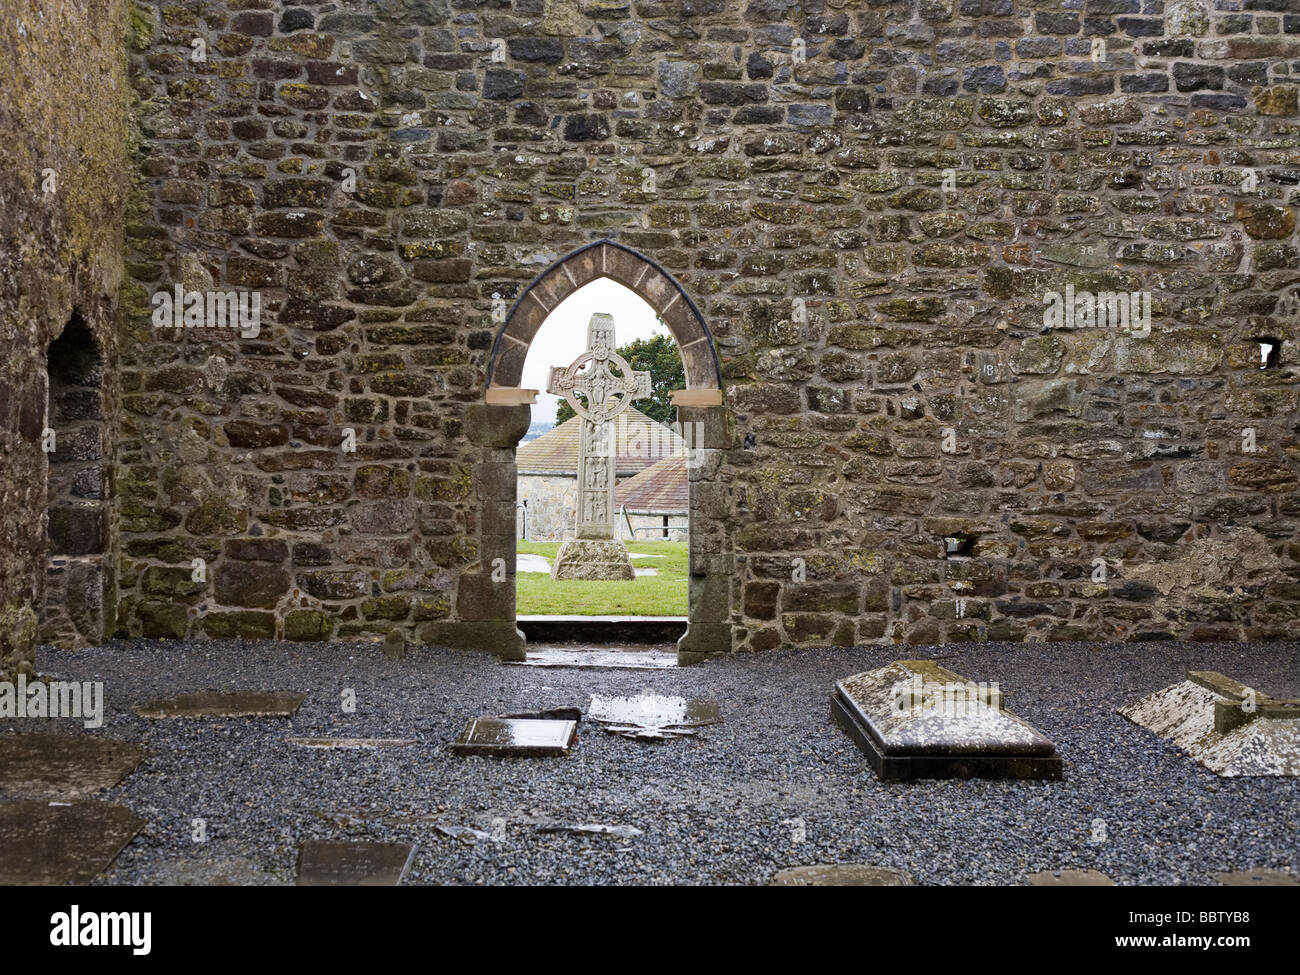 High Cross and Wall. Cross of the Scriptures c908 framed by a doorway of the Temple Coghlan Cathedral or Temple - Stock Image